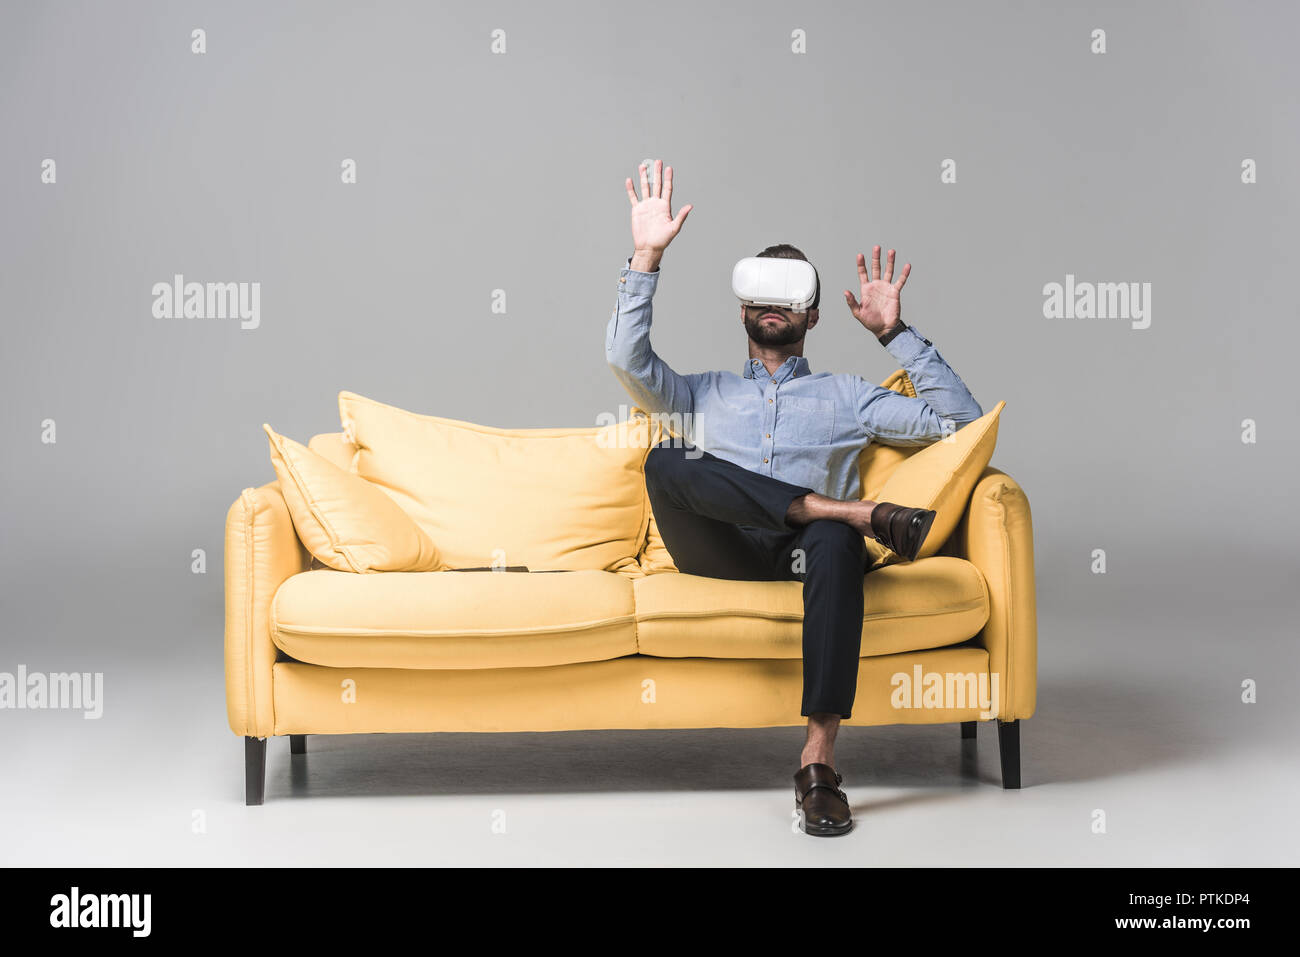 dc760be9e7a bearded man gesturing and using virtual reality headset and sitting on  yellow sofa on grey -